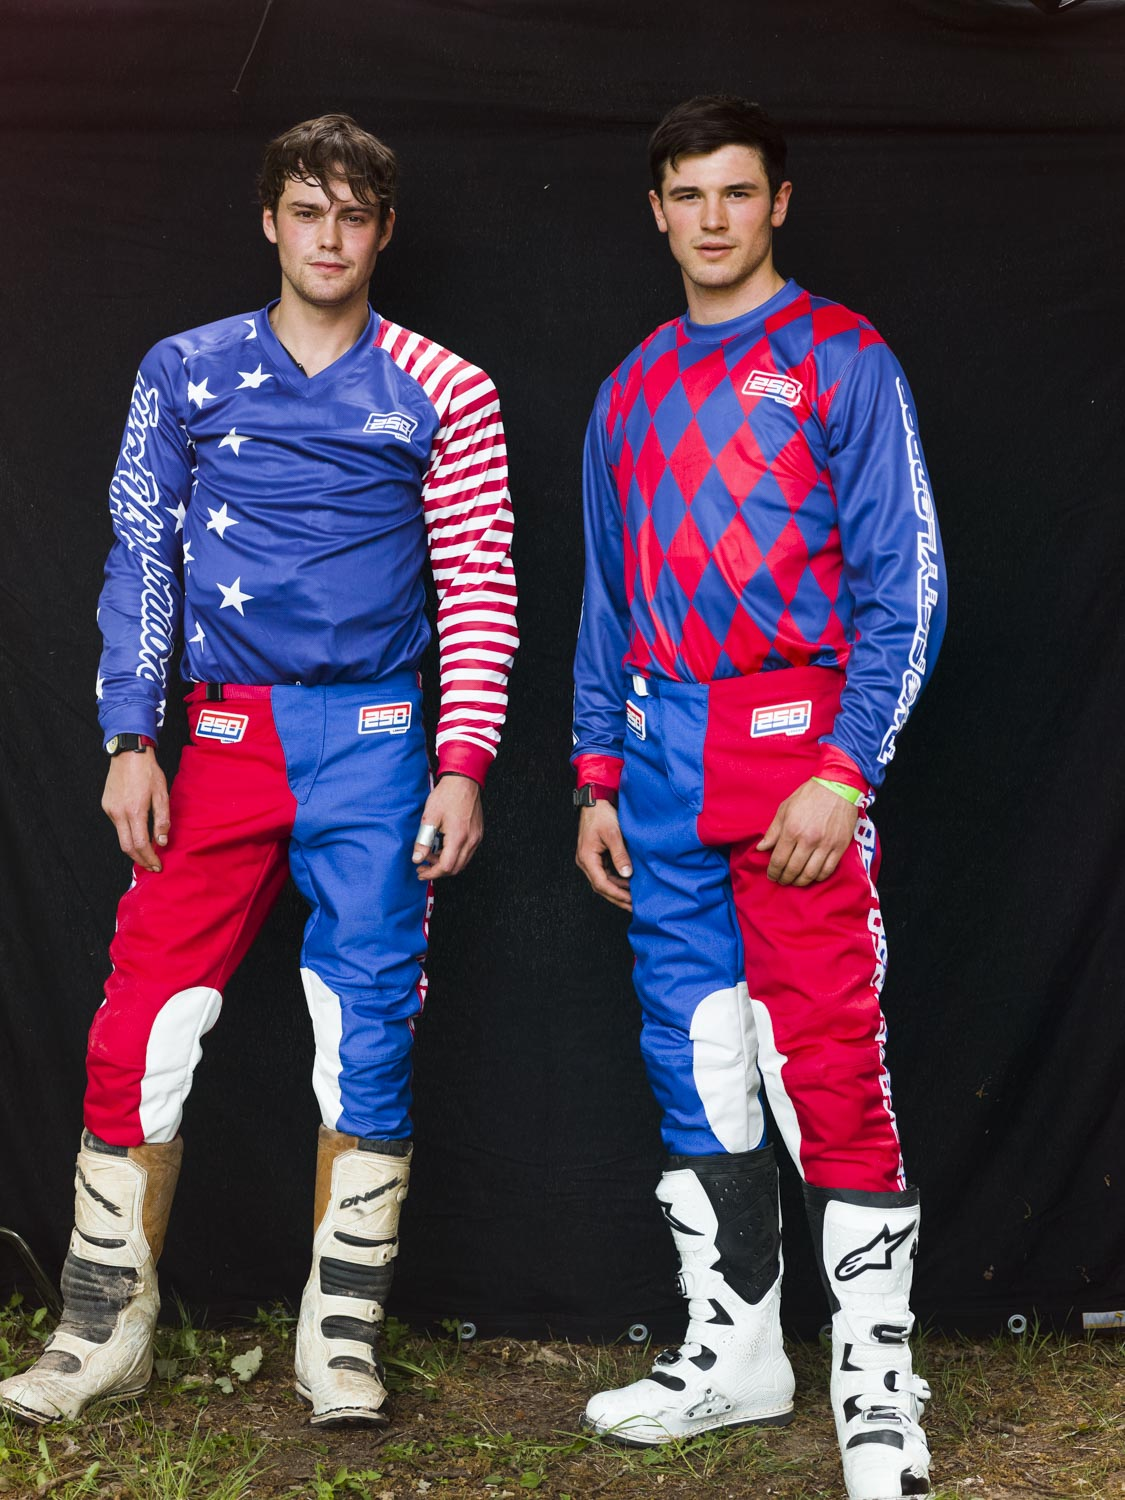 Jacob + Jevan, primed and ready to race... Image by David Goldman